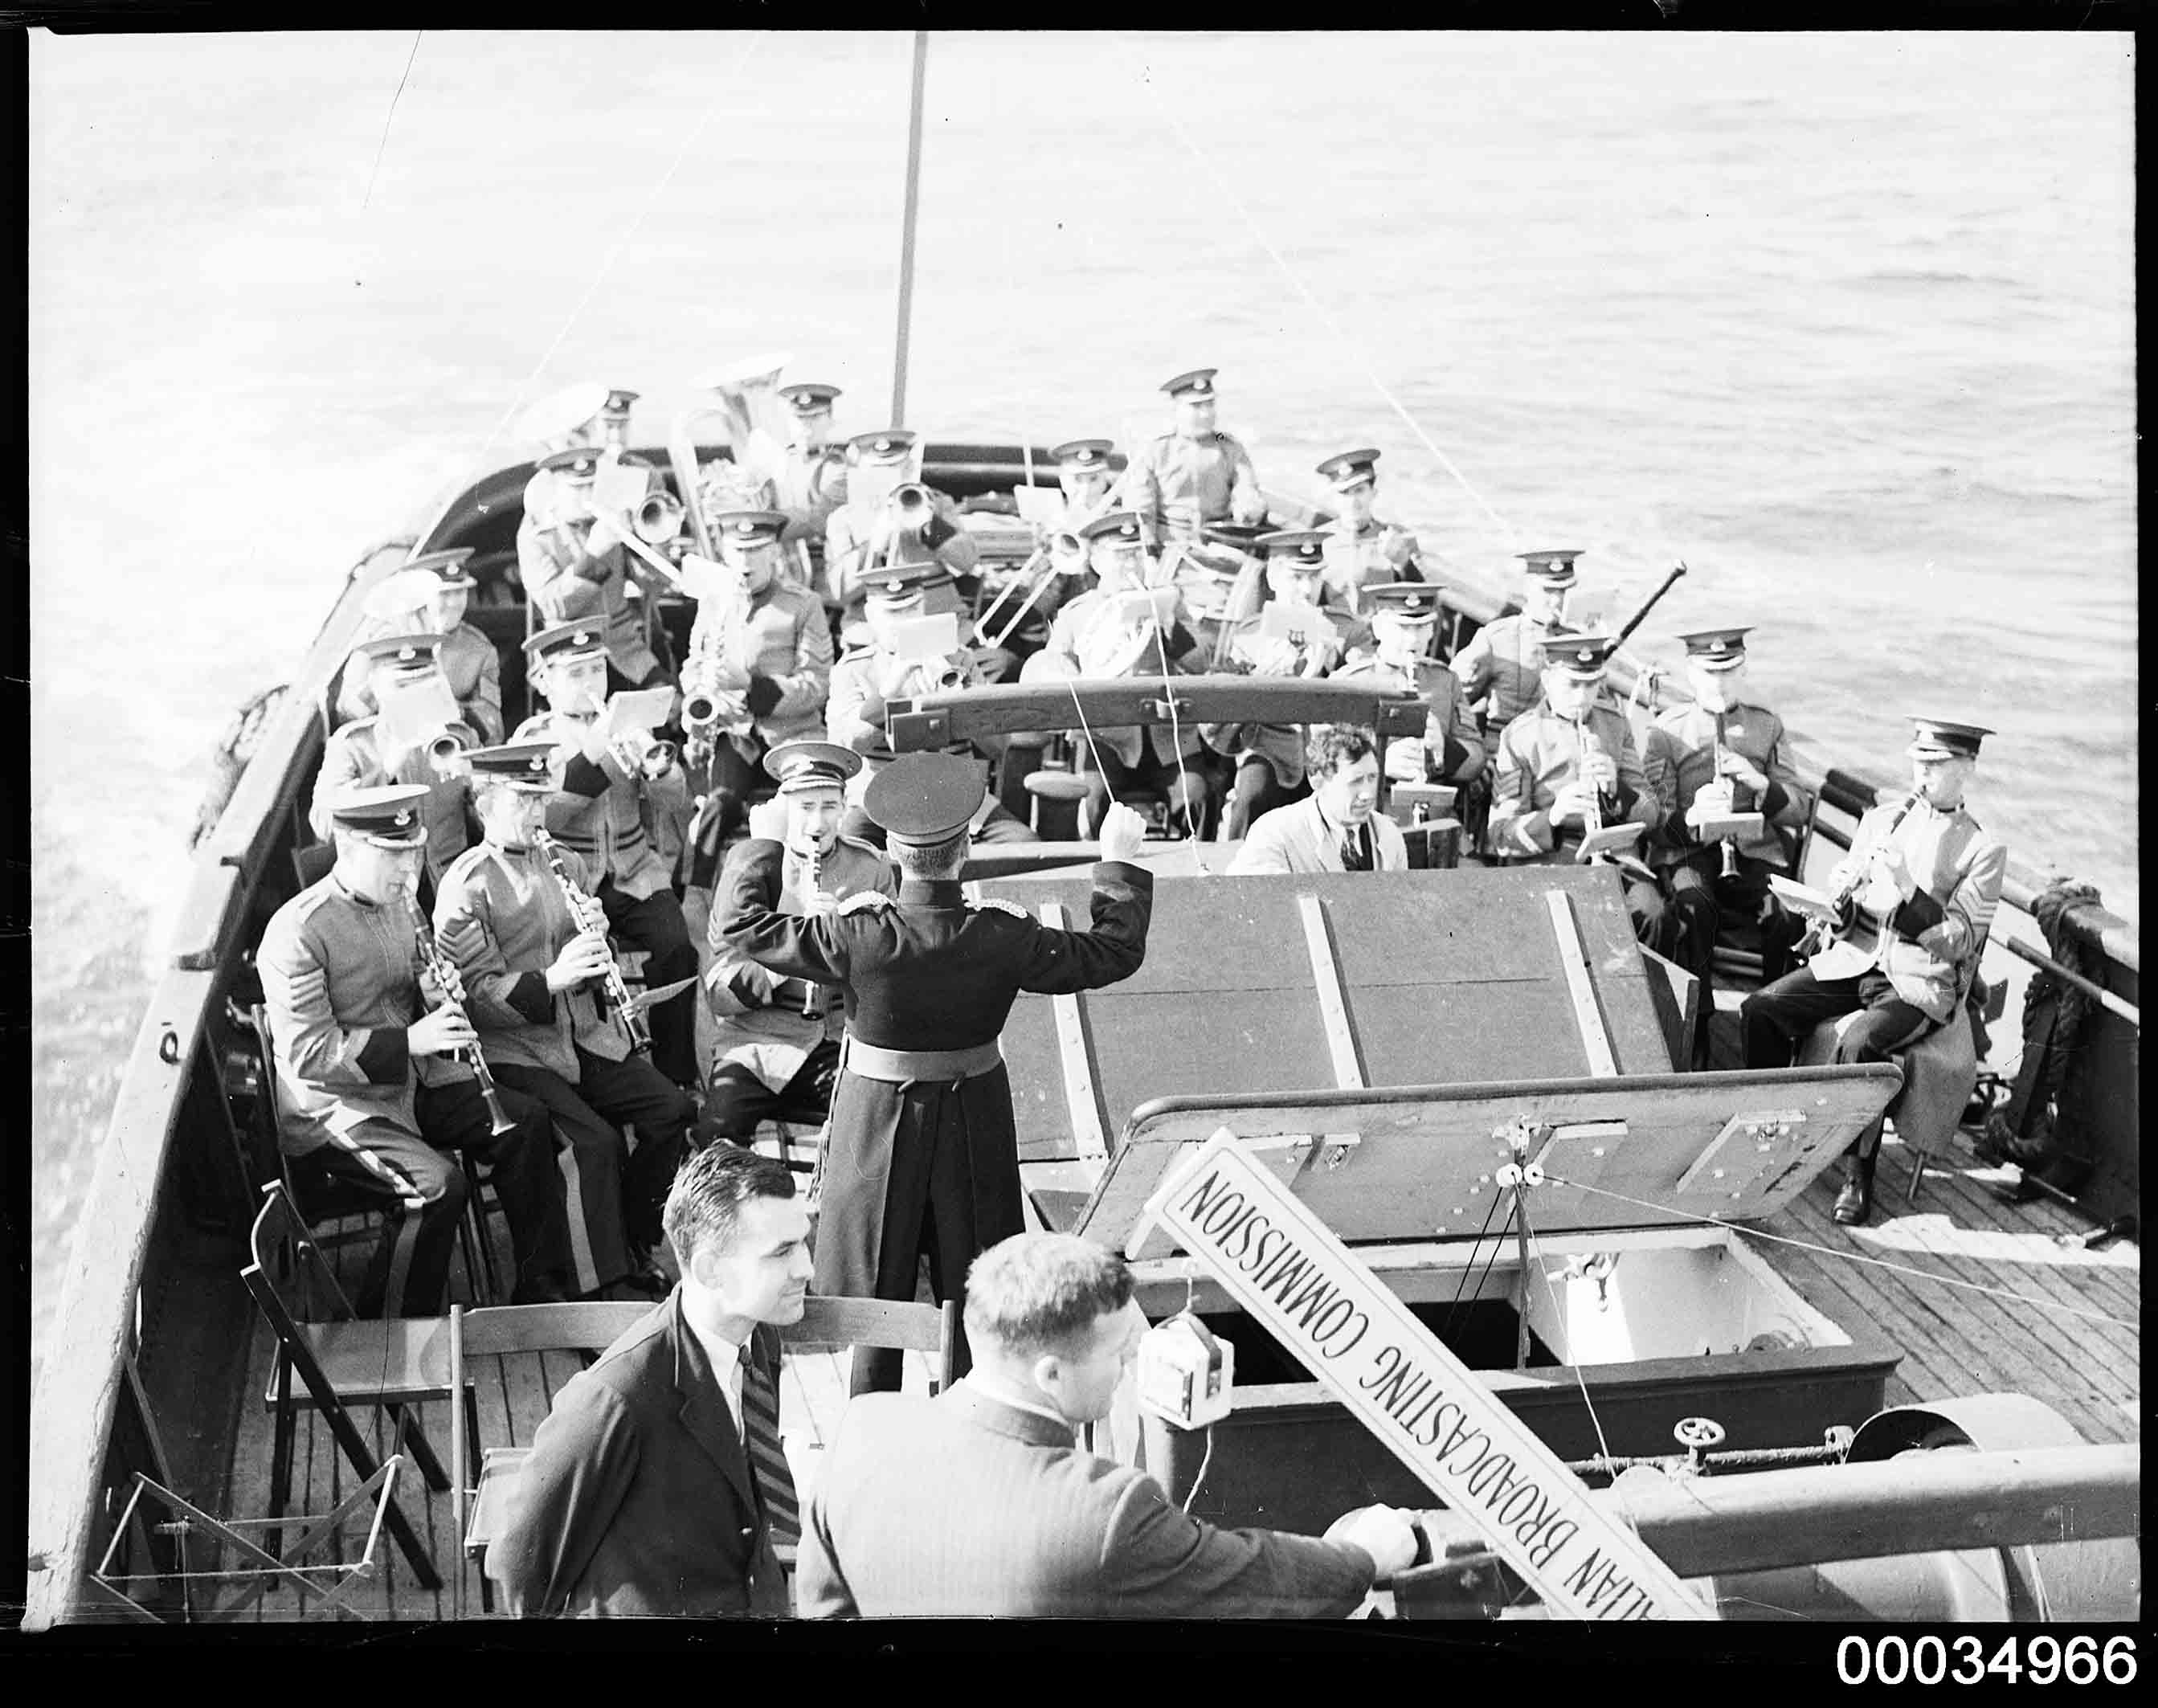 ABC Military Band playing with ABC commentator on a vessel, 1933-1951